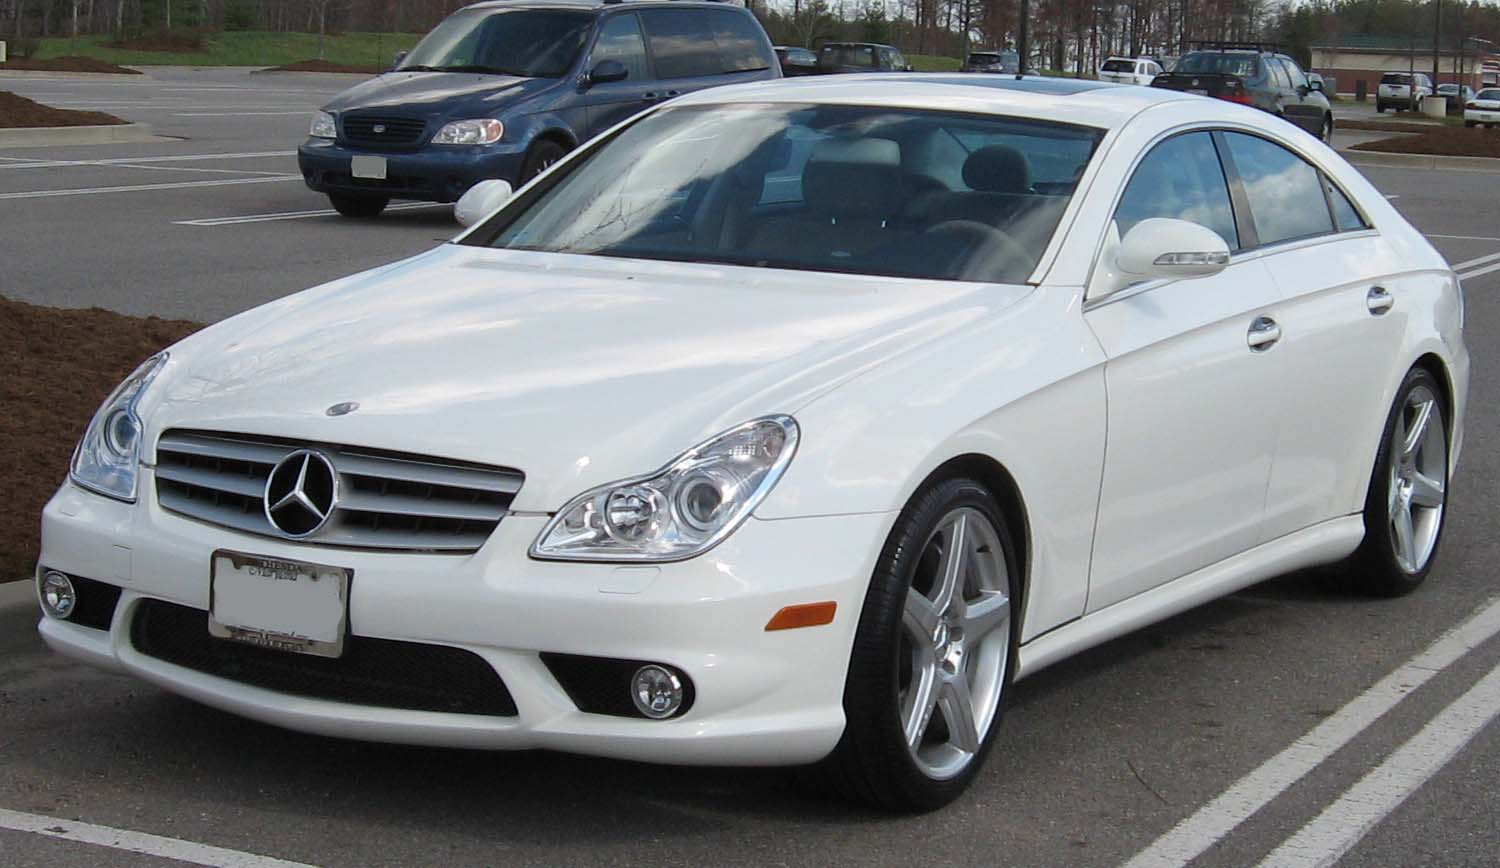 Mercedes-Benz CL 55 AMG photo 08